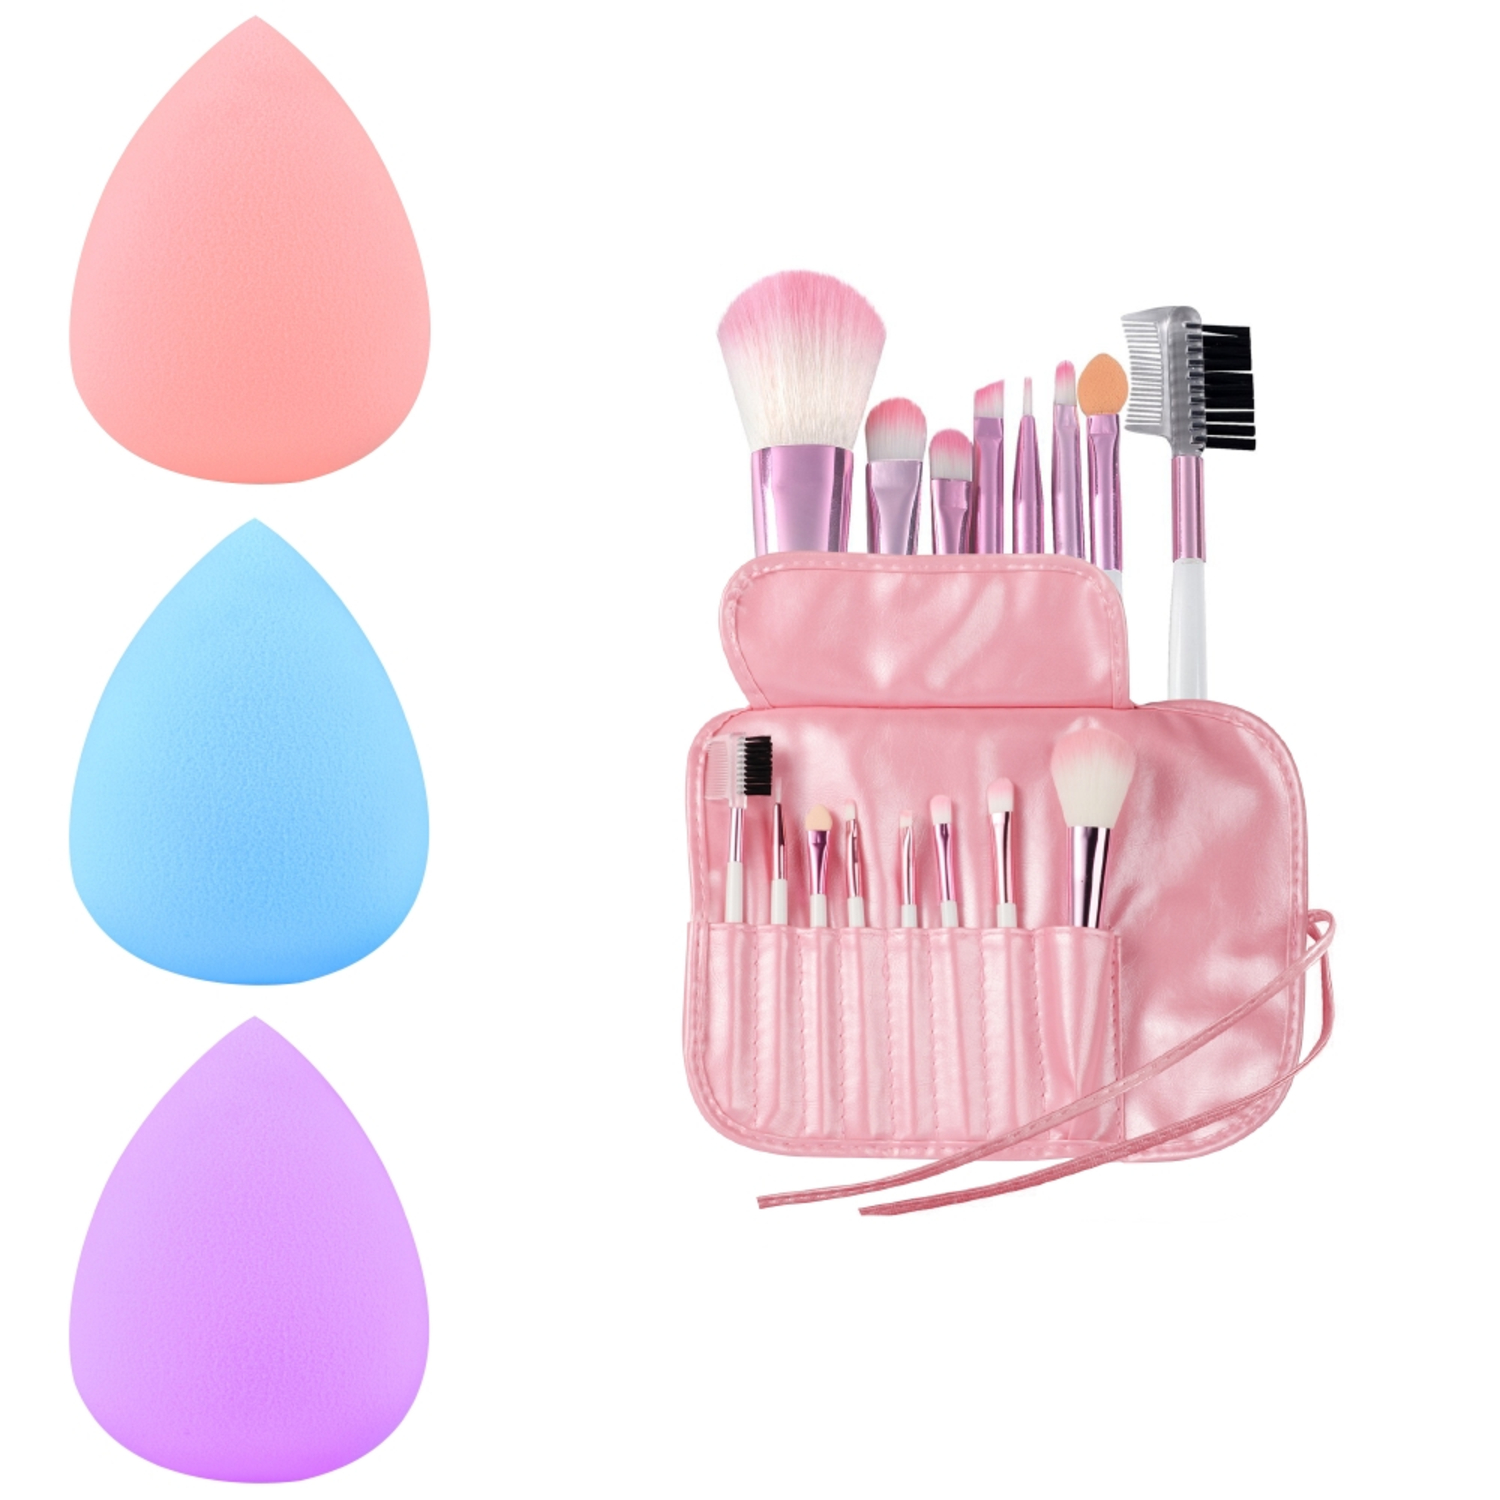 Zodaca Pro 8pcs Makeup Brushes Set Powder Foundation Eyeliner Lip Cosmetic+3x Sponge Blender Flawless Droplets